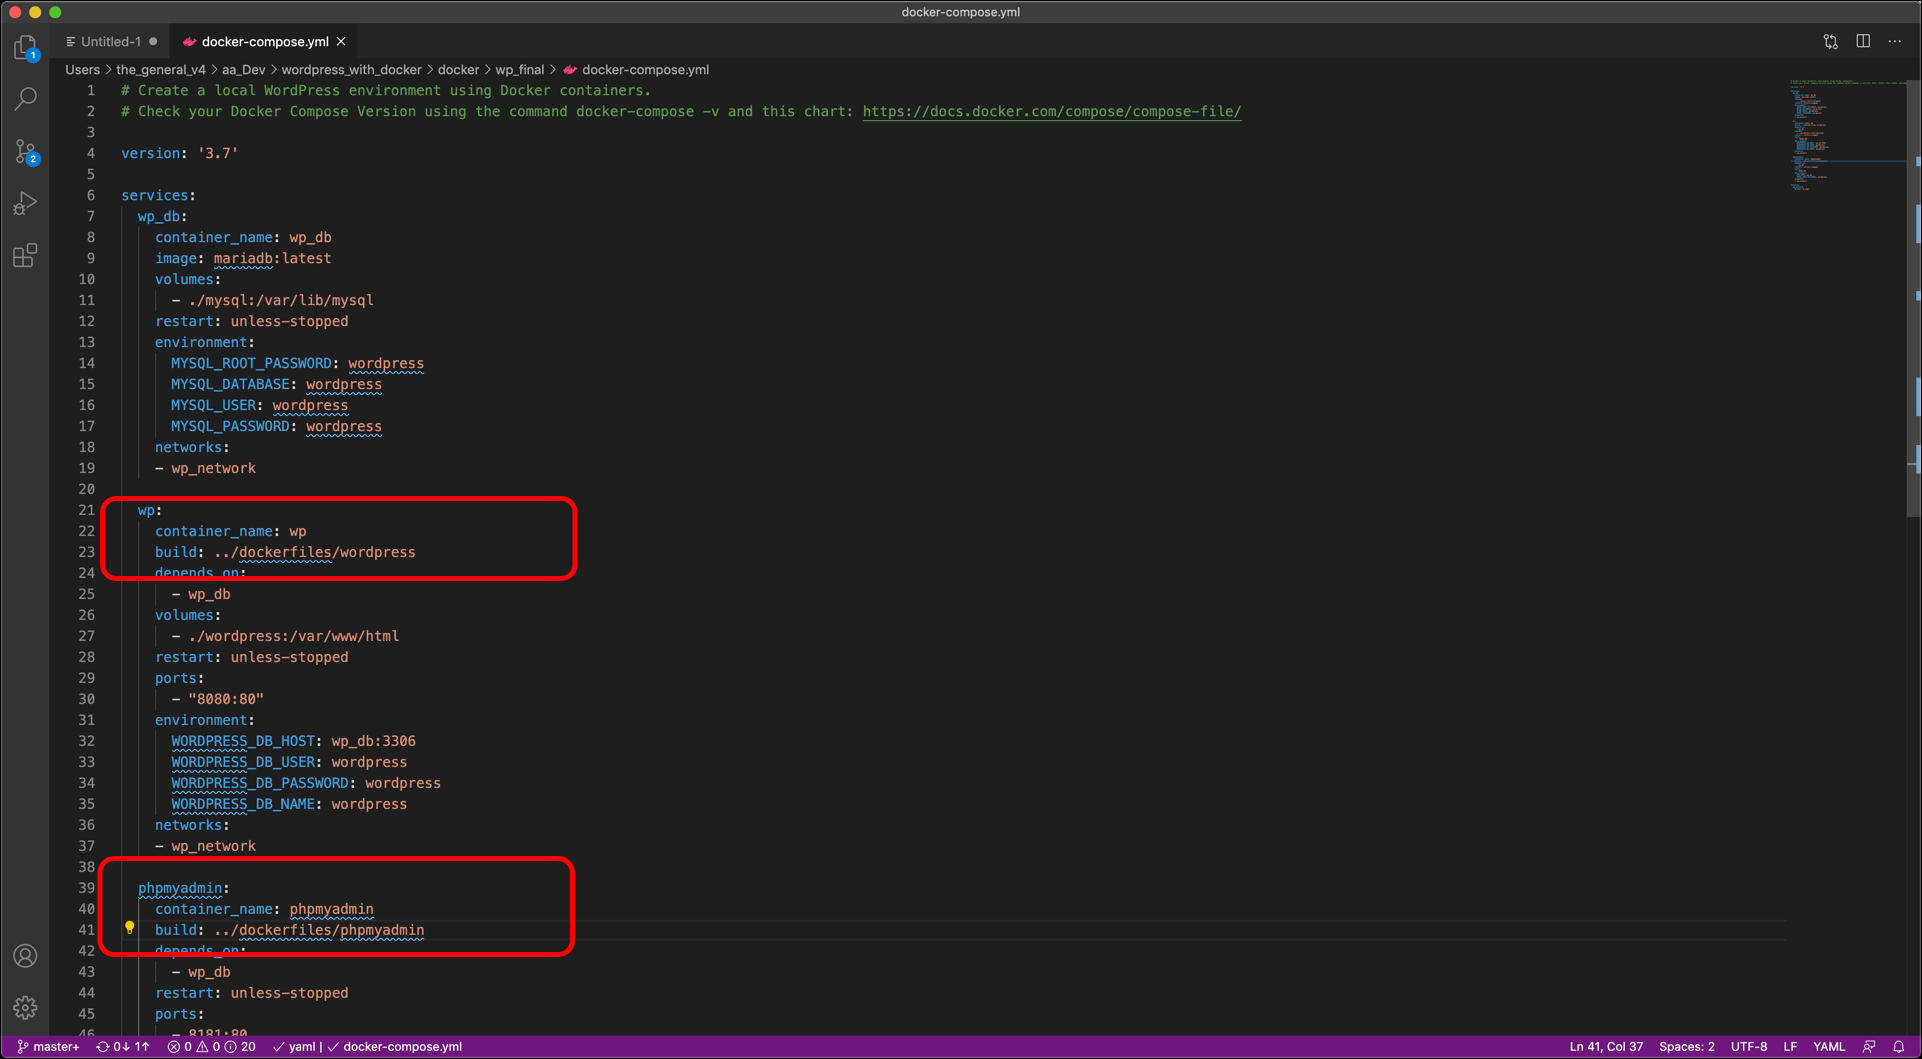 Screenshot displaying terminal output from docker compose and other docker commands.